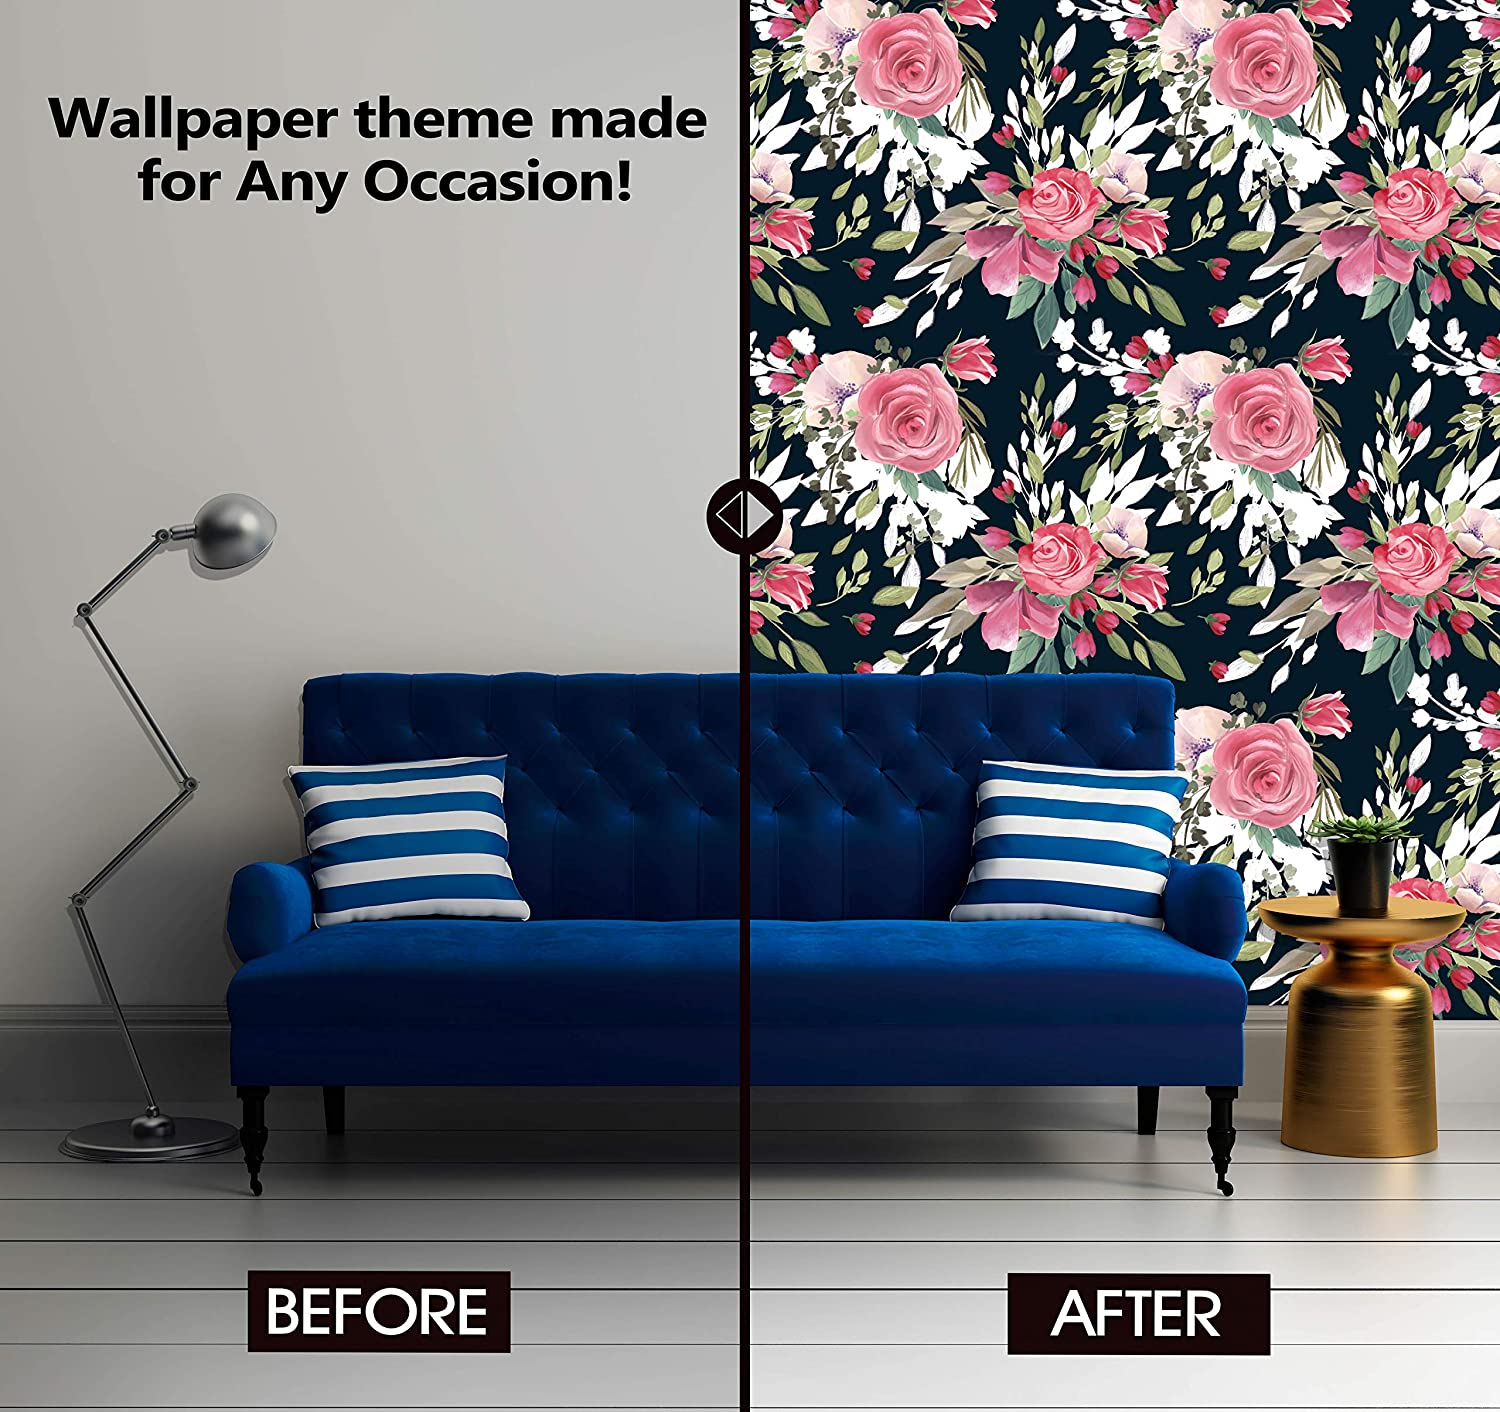 Amazon Com Abstract Beautiful Flowers Theme Wallpaper Mural For Interior Design Peel And Stick Wallpaper Decor You Walls For Any Occasion R248 24 X 36 Home Kitchen